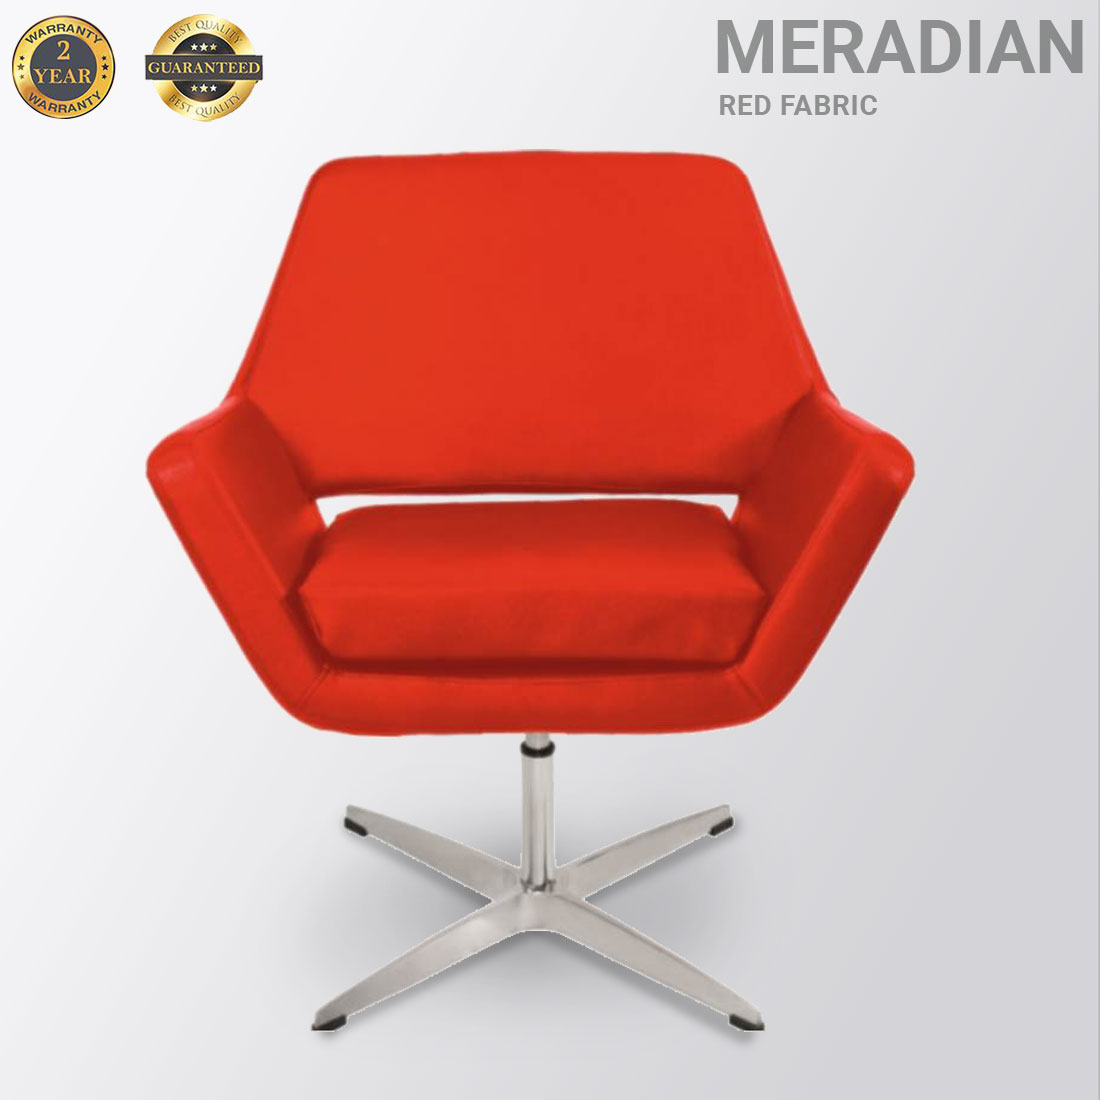 Meridian Fabric Red